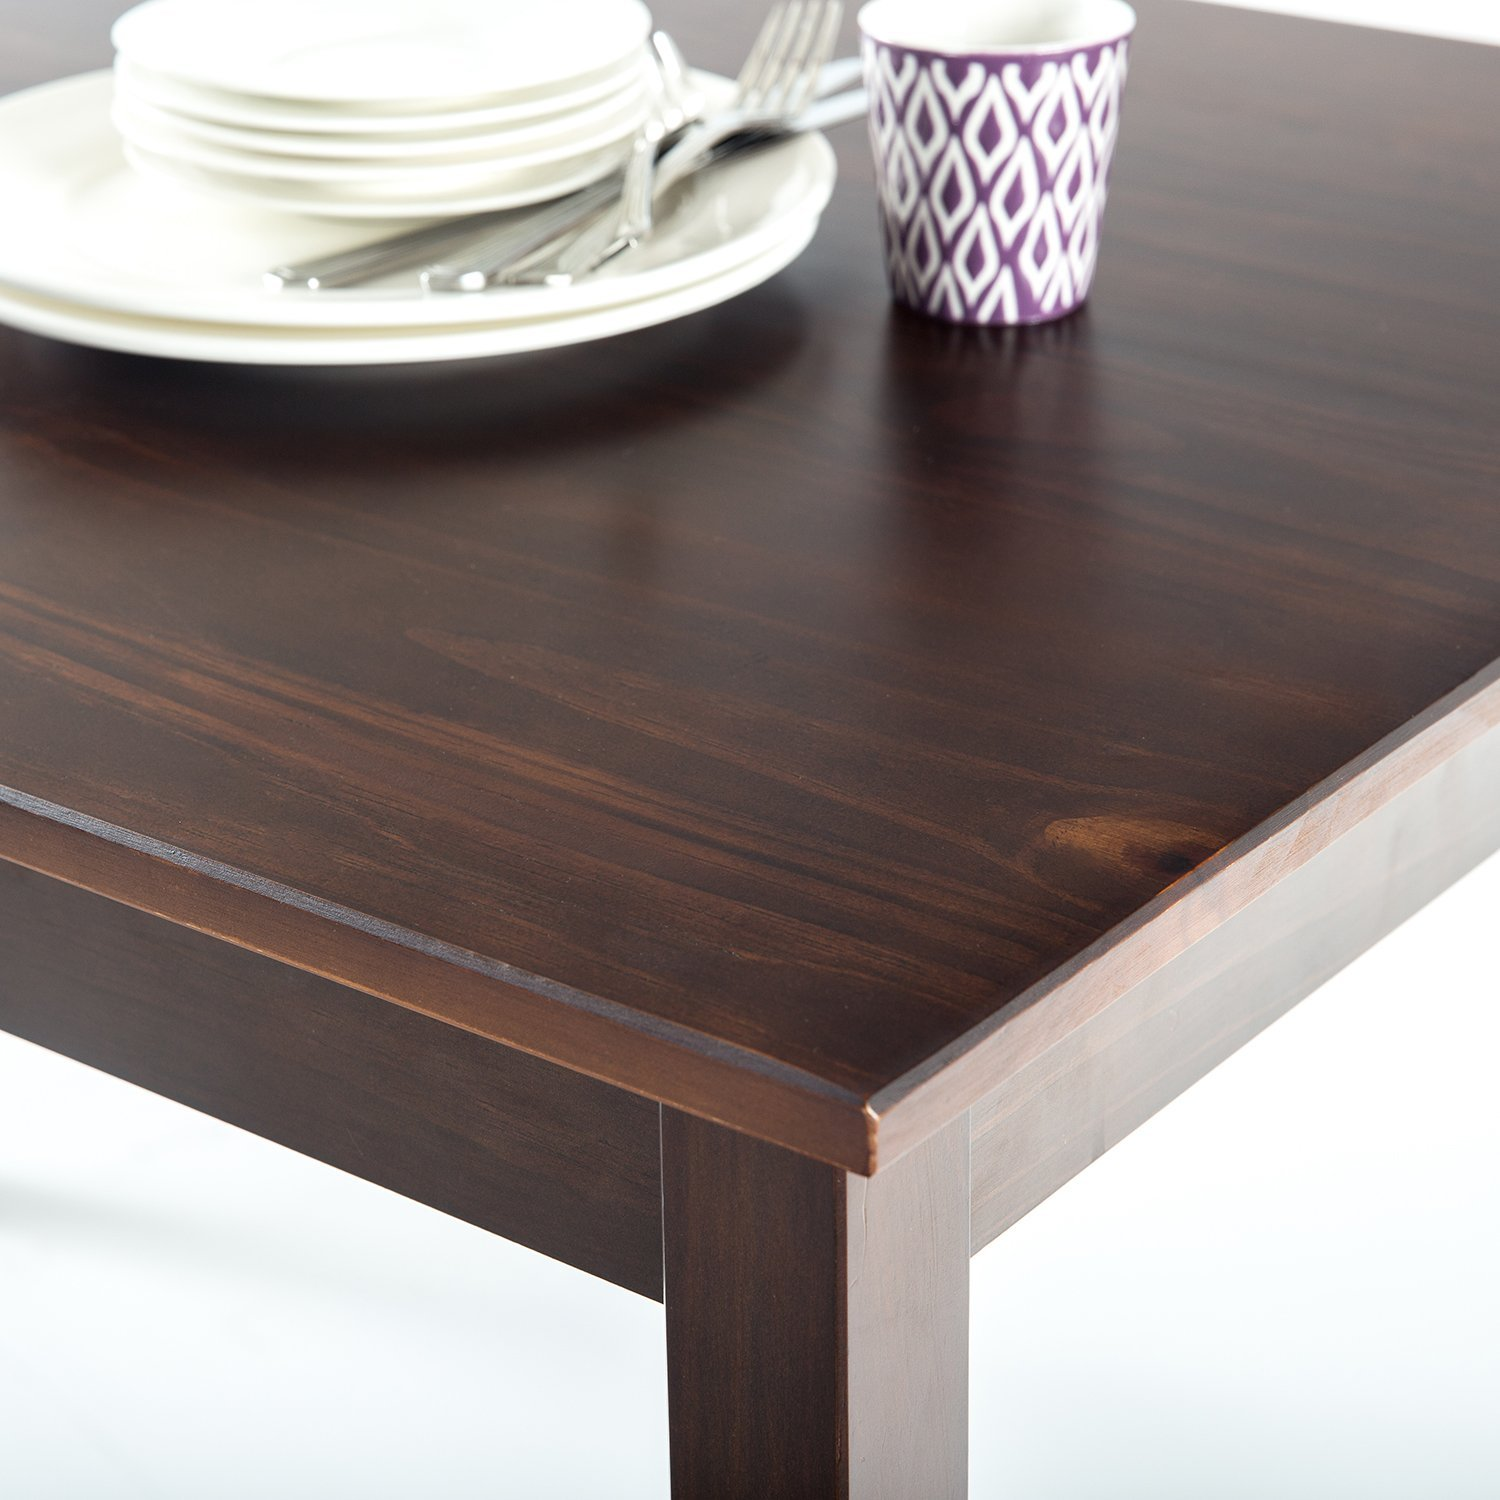 Zinus Espresso Wood Dining Table/Table Only by Zinus (Image #5)